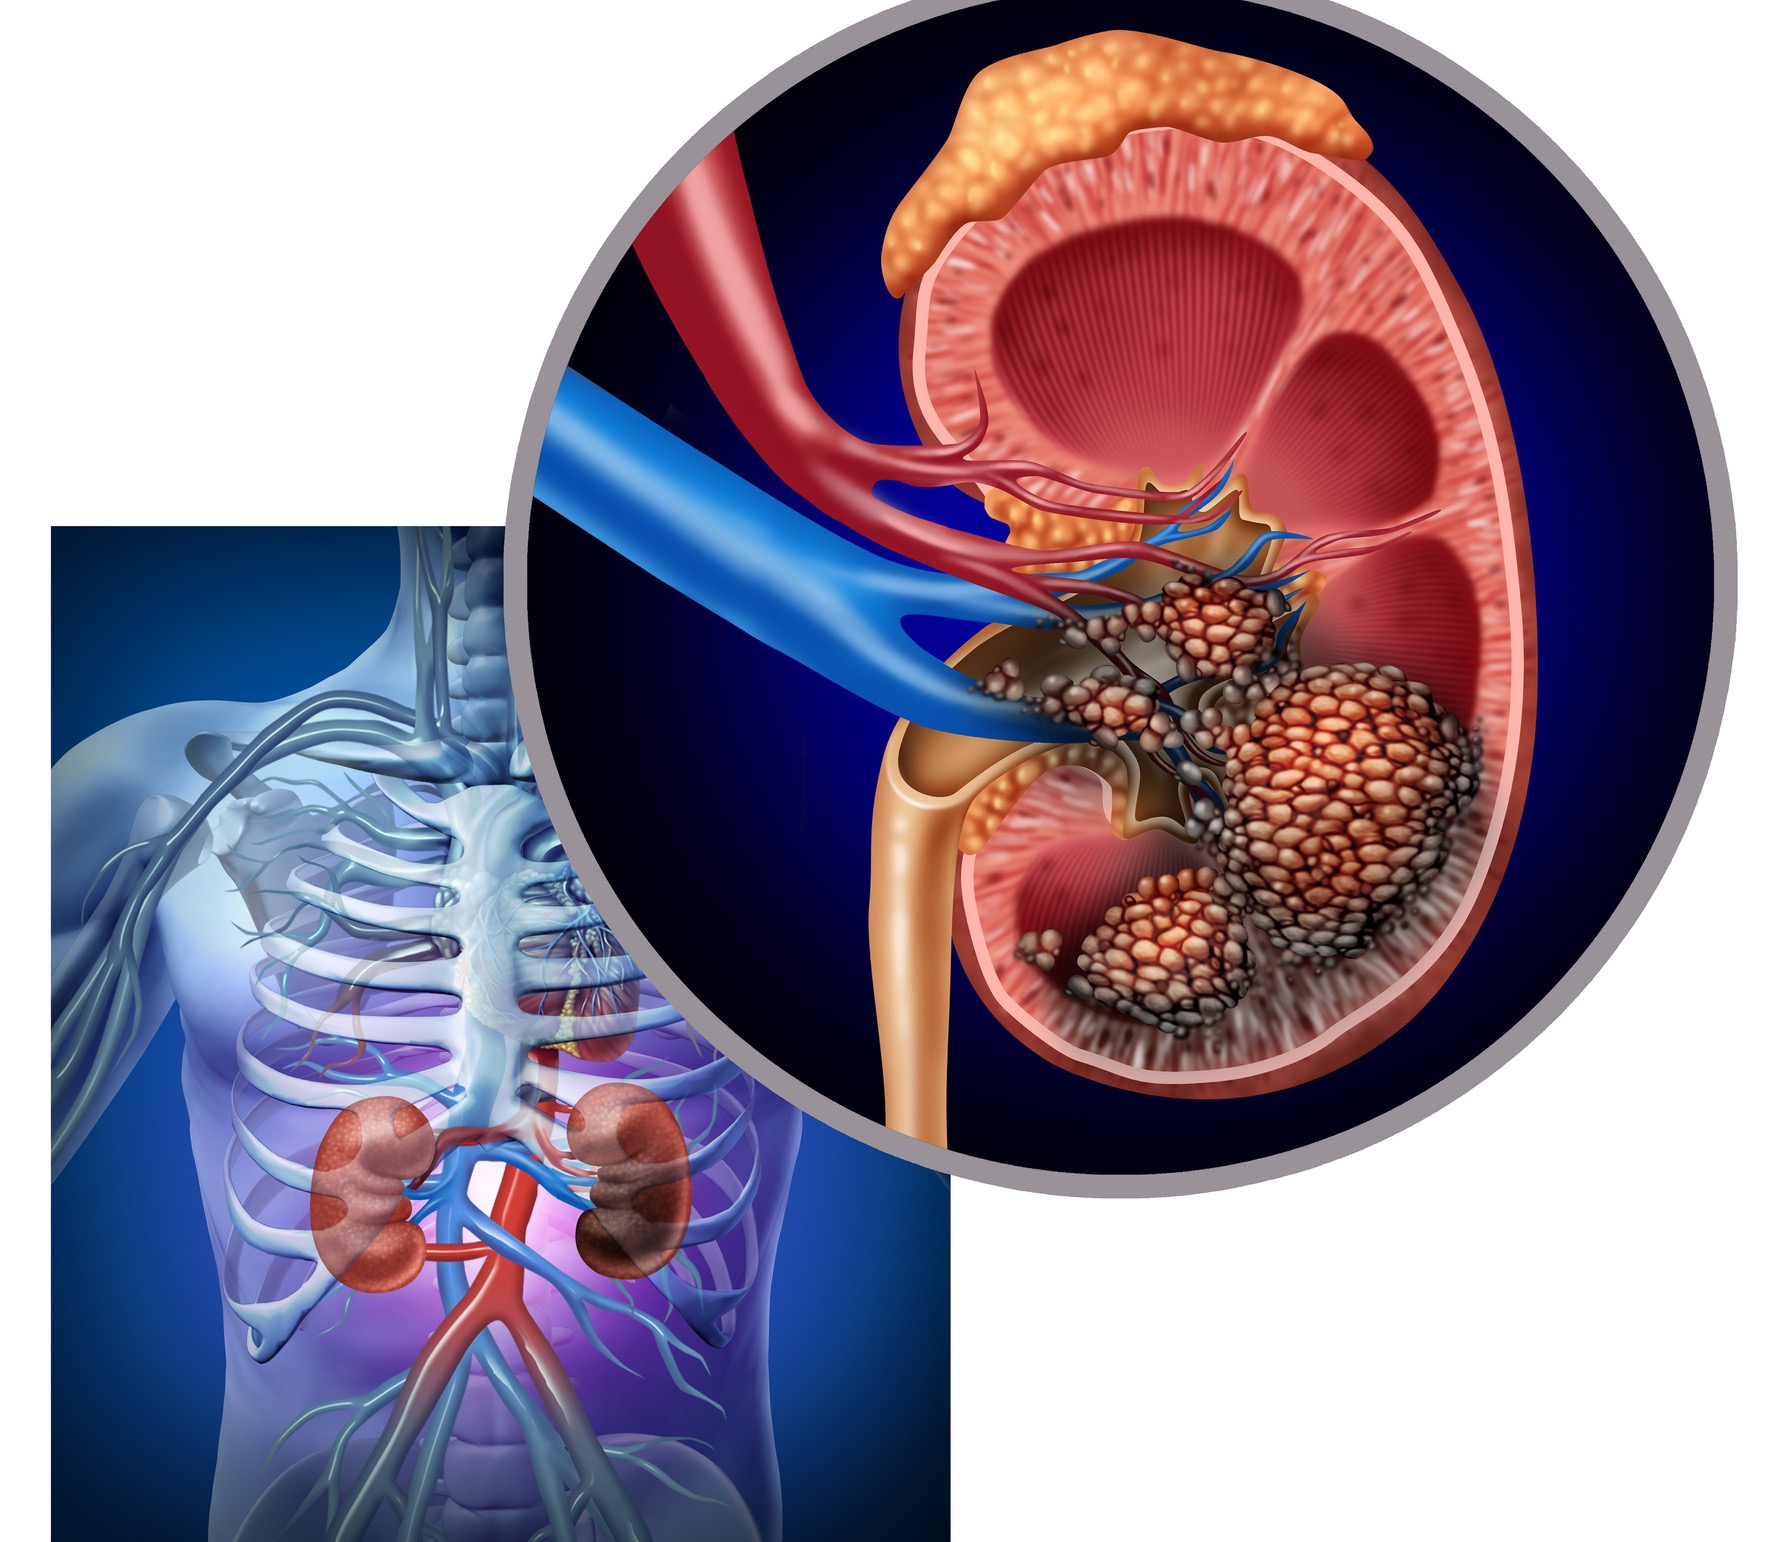 * An Overview of Kidney Cancer - symptoms, causes and treatment alternatives